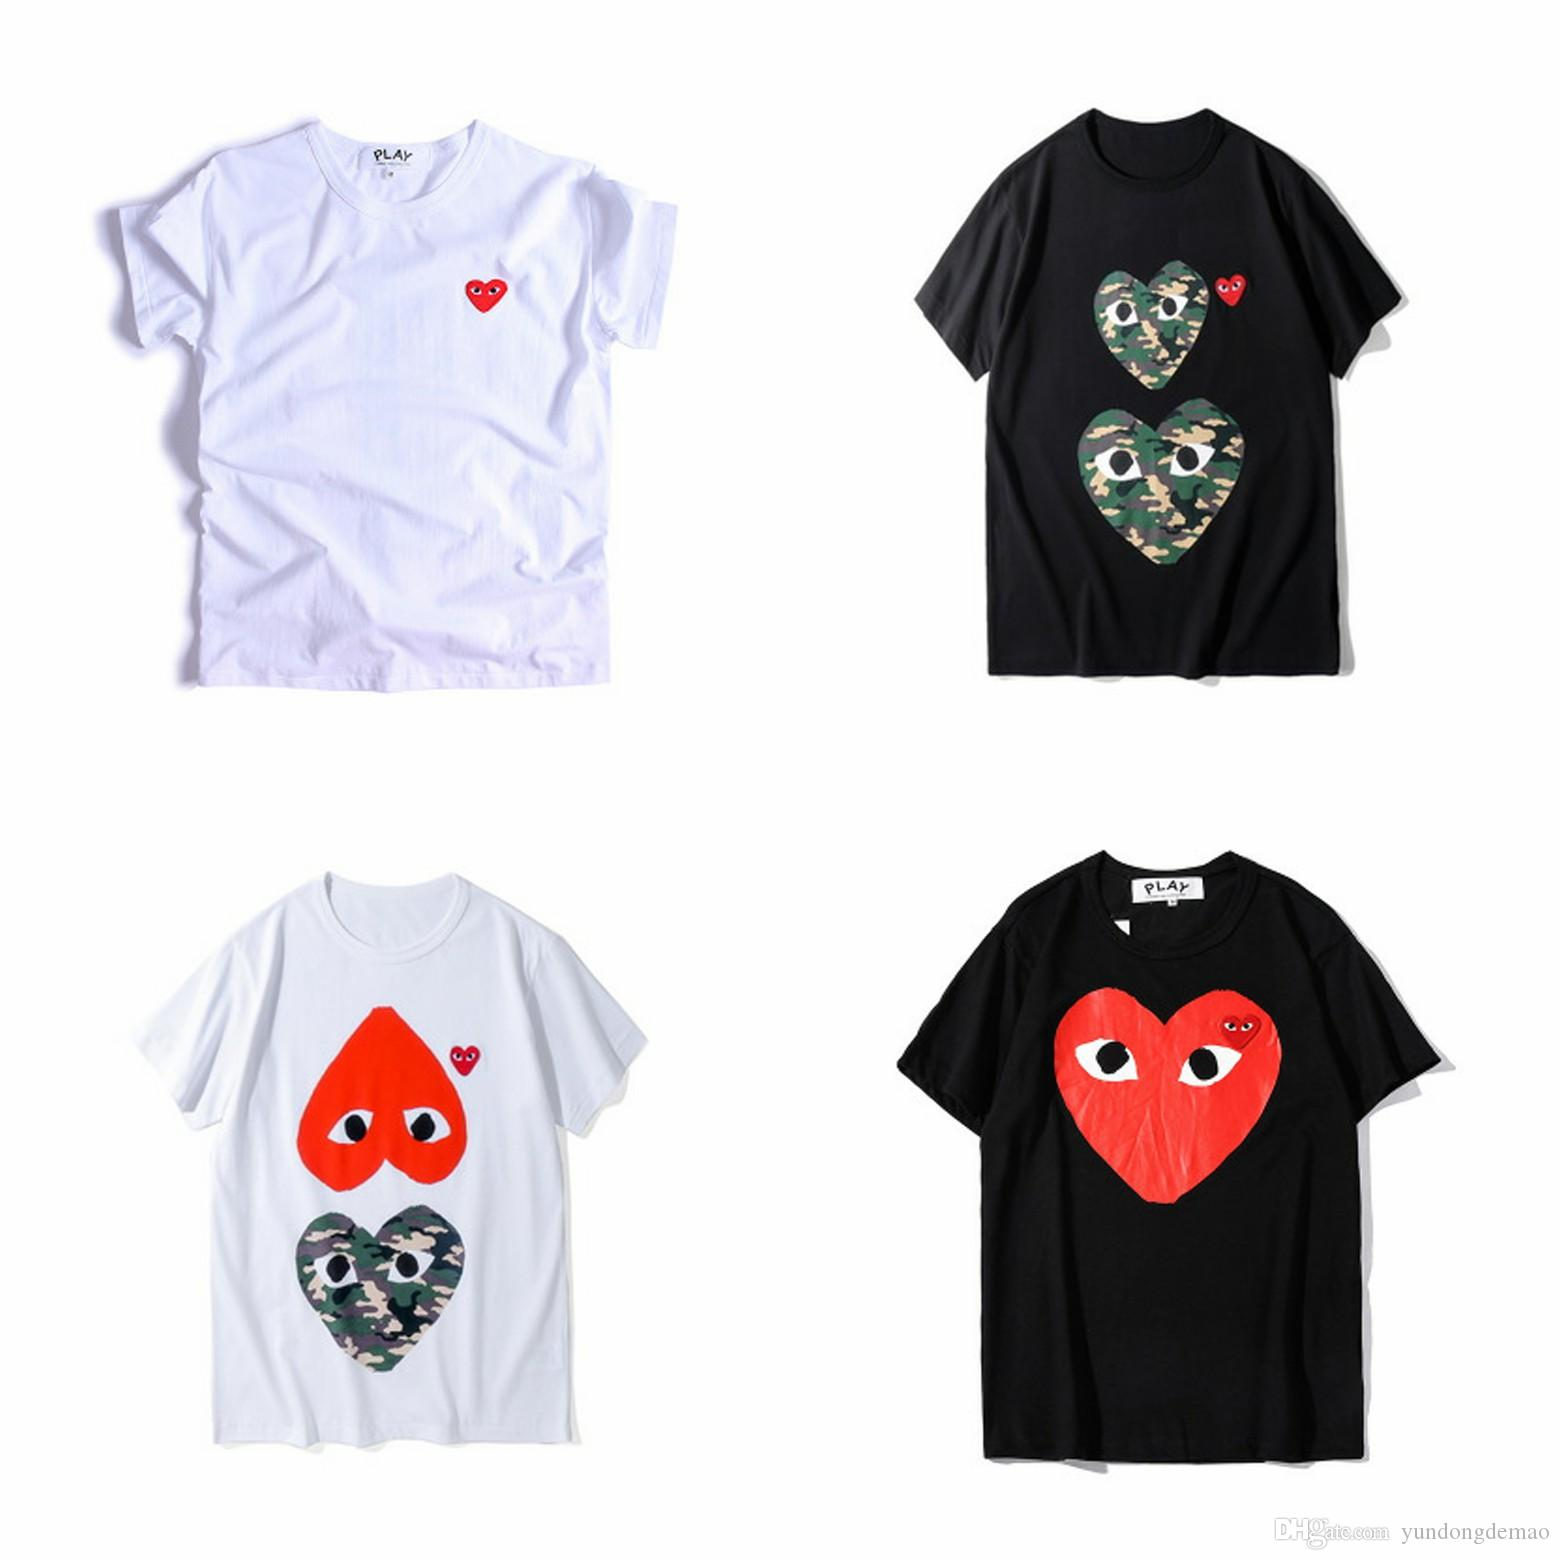 Lover New Best Quality HOLIDAY Black Heart Emoji PLAY TEE Limited Big Red Heart PLAY Tee